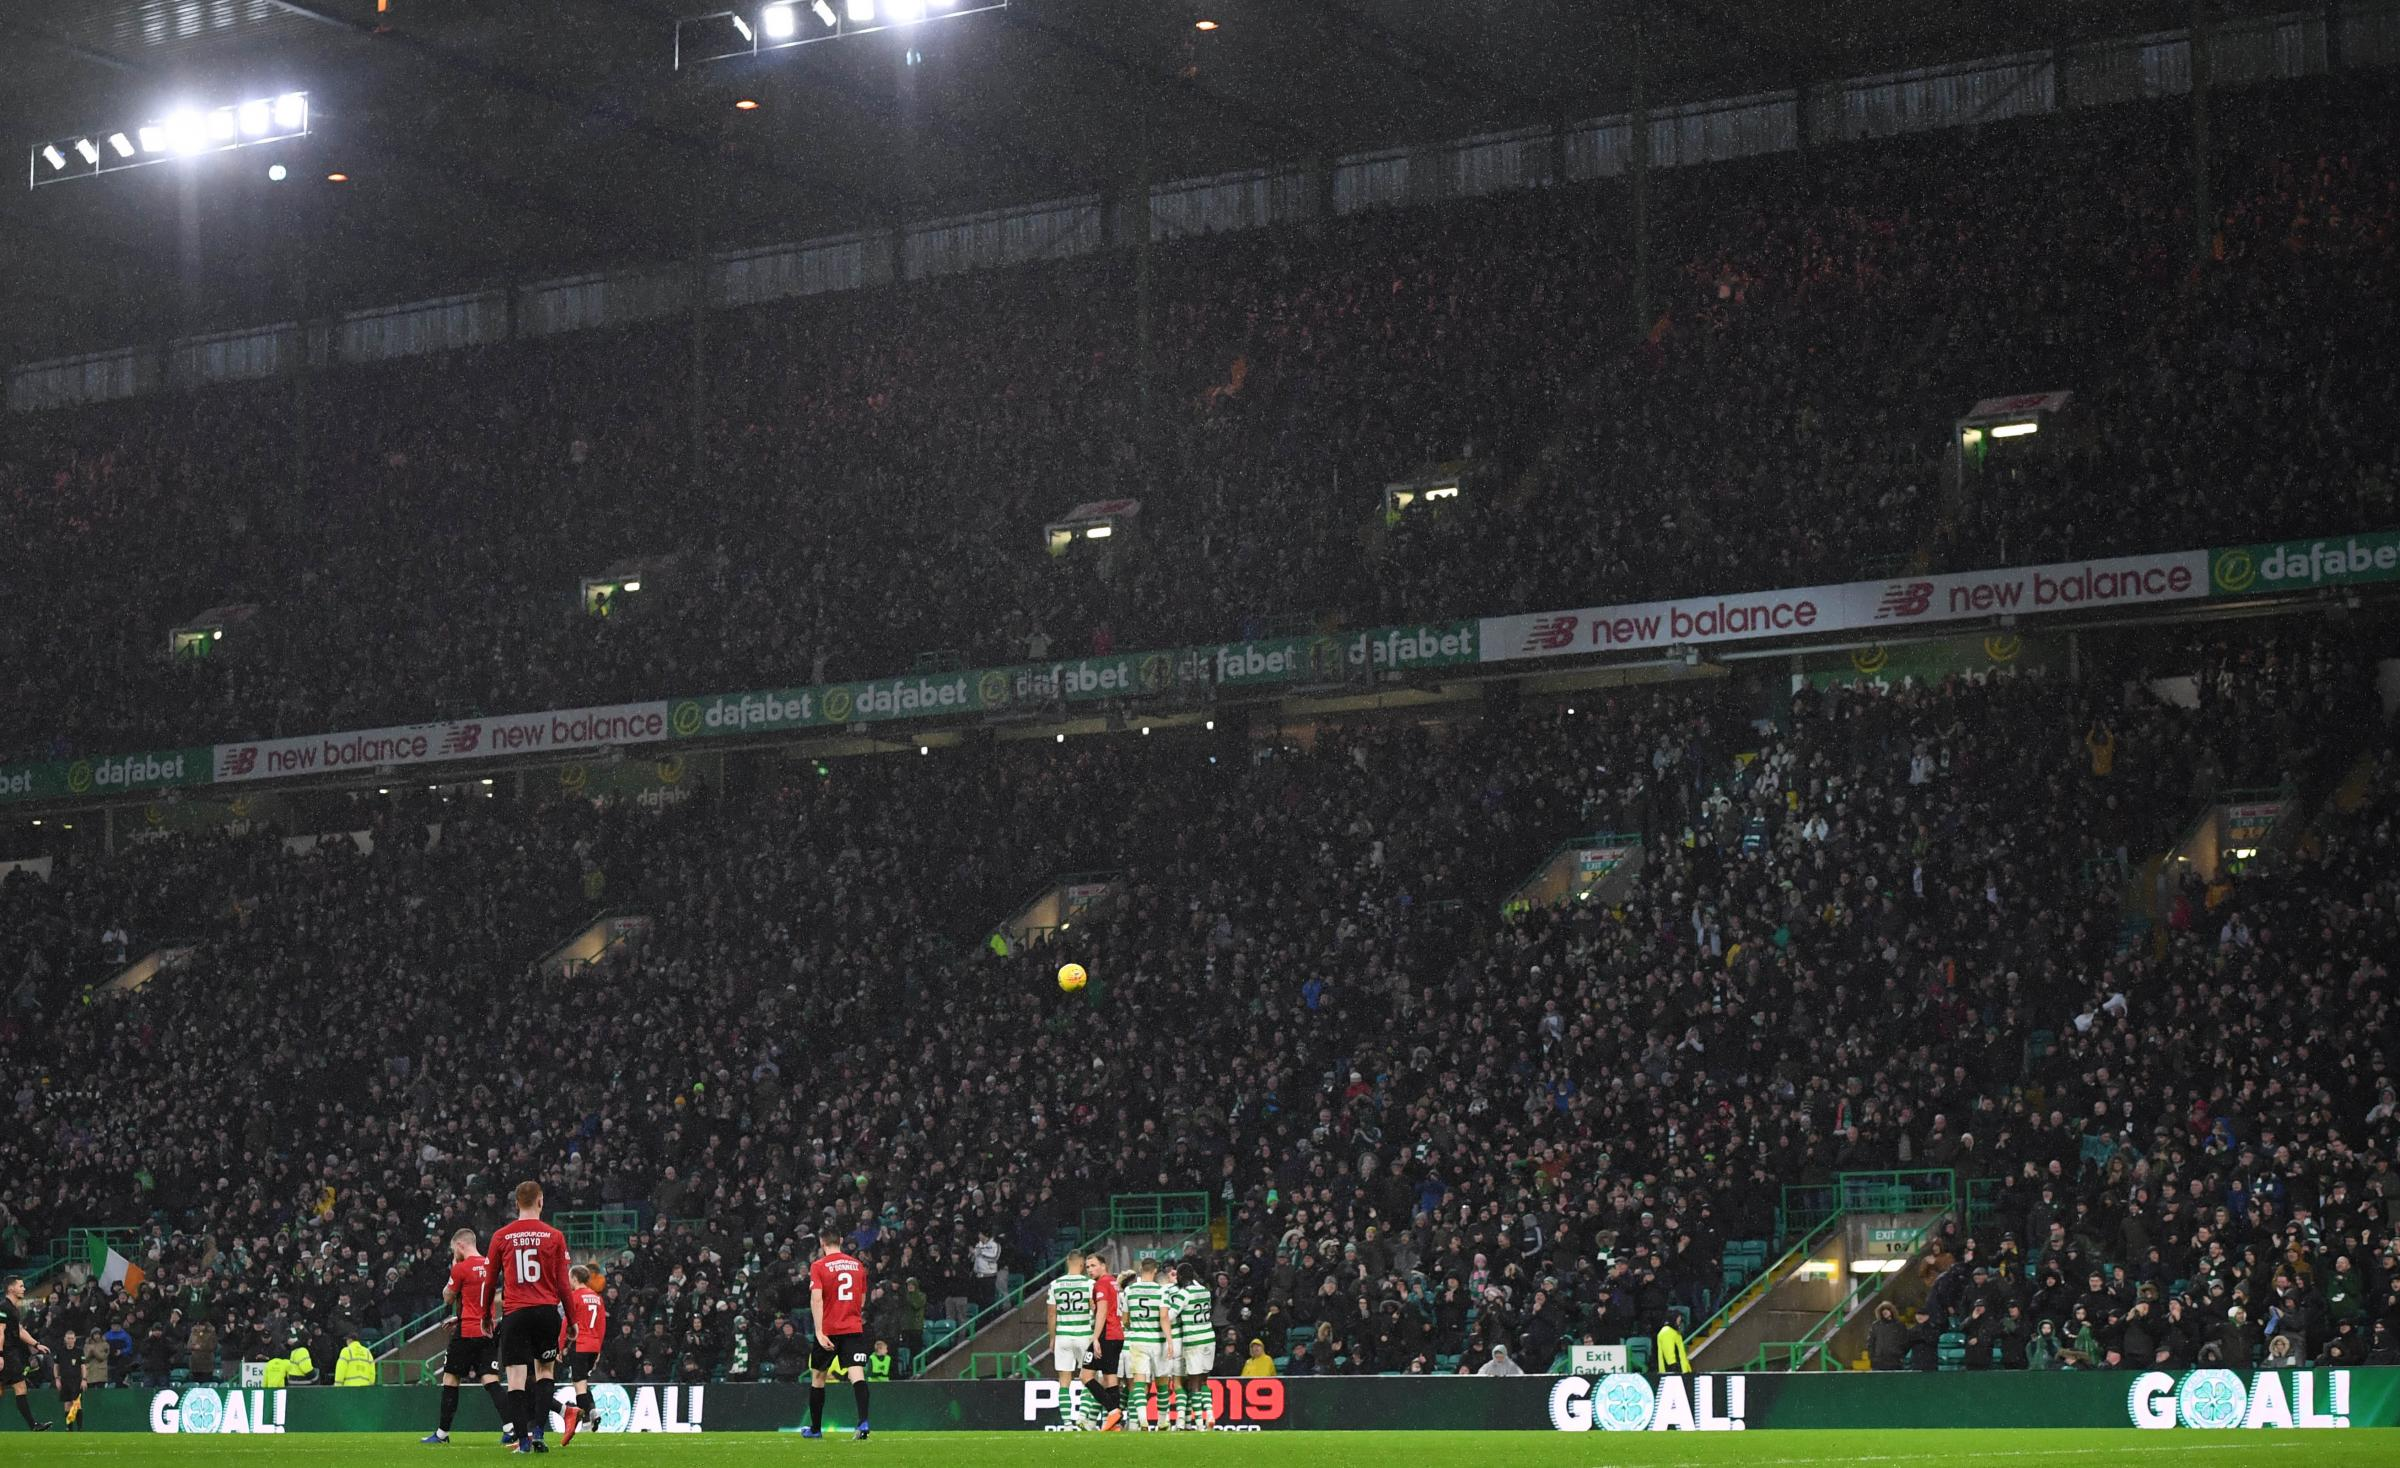 Celtic underlined their domestic dominance with a 5-1 thrashing of Kilmarnock